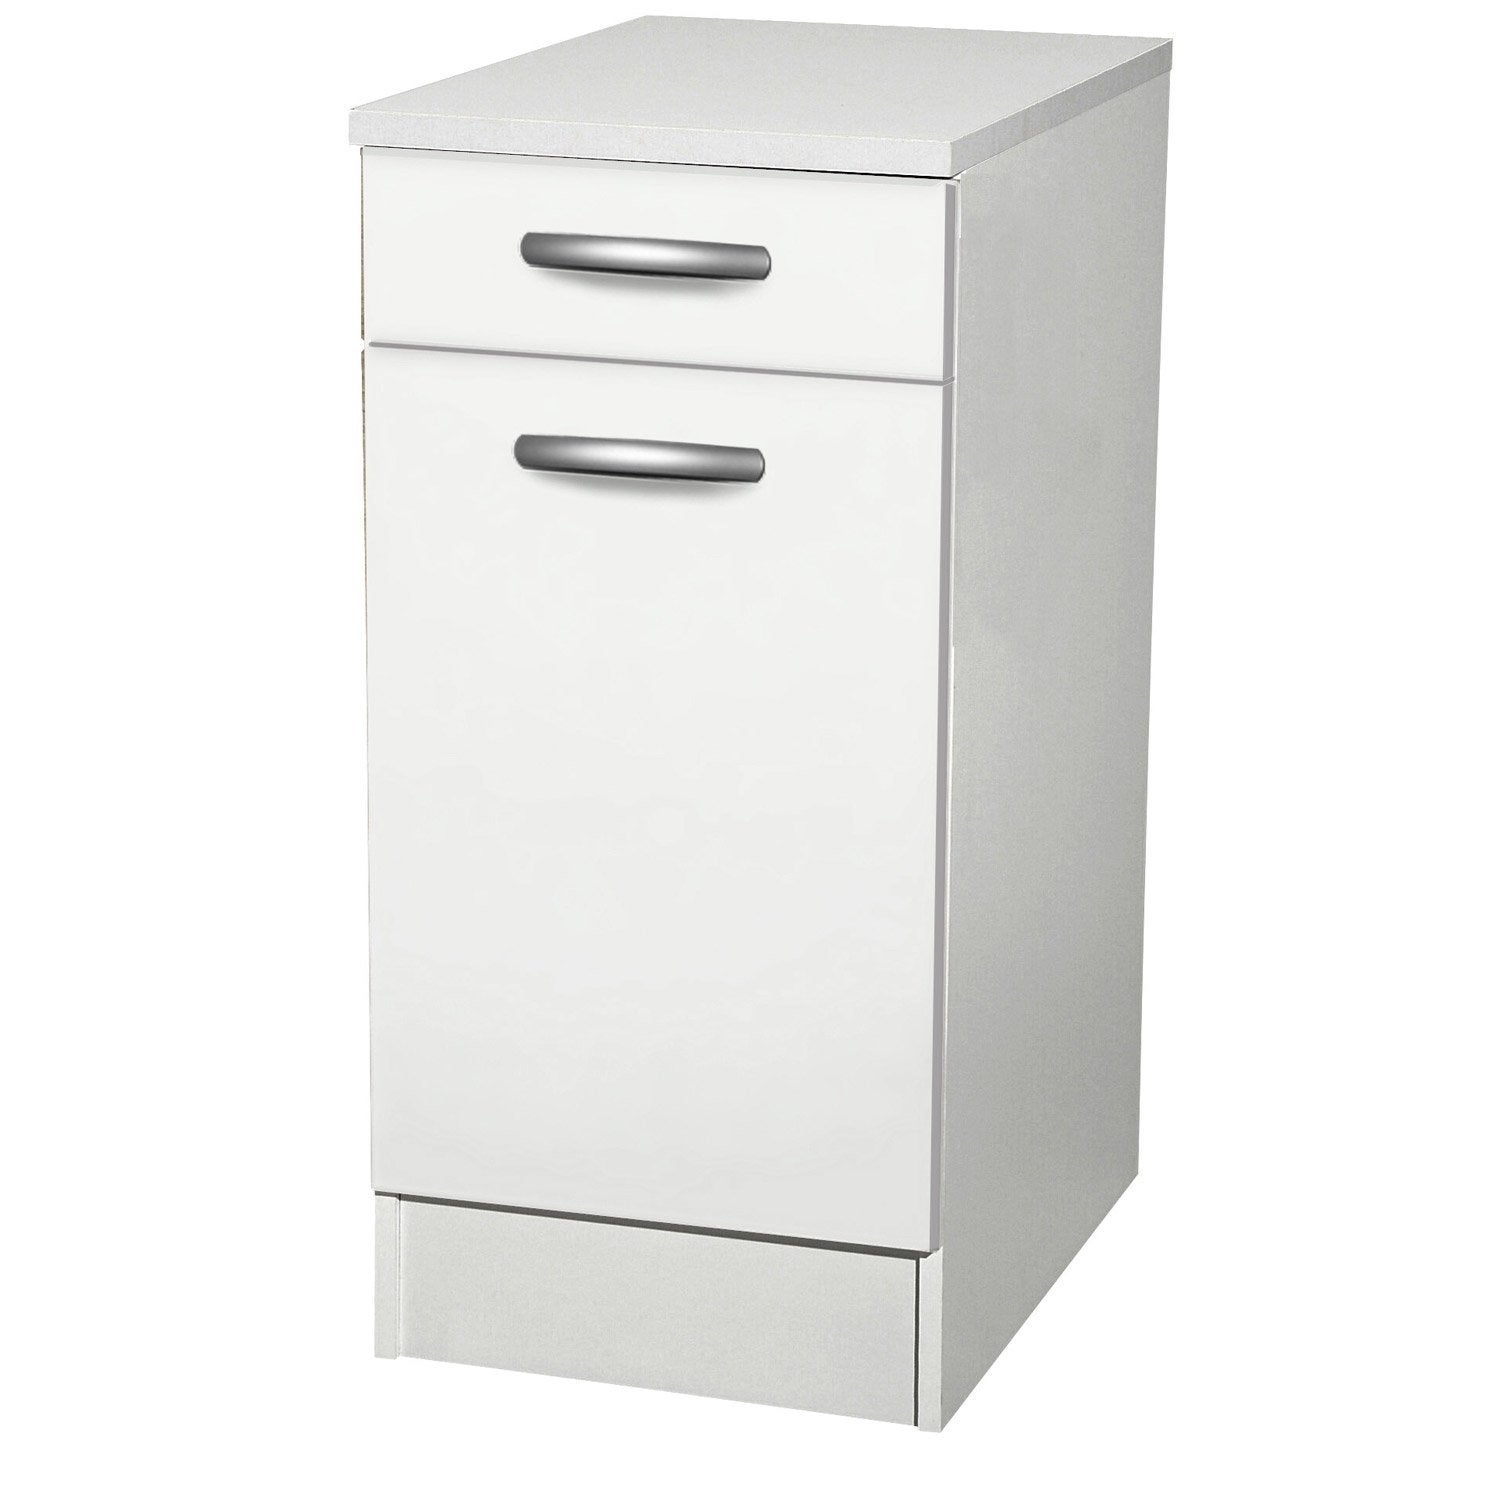 Element bas de cuisine element bas cuisine sur for Portes elements cuisine leroy merlin